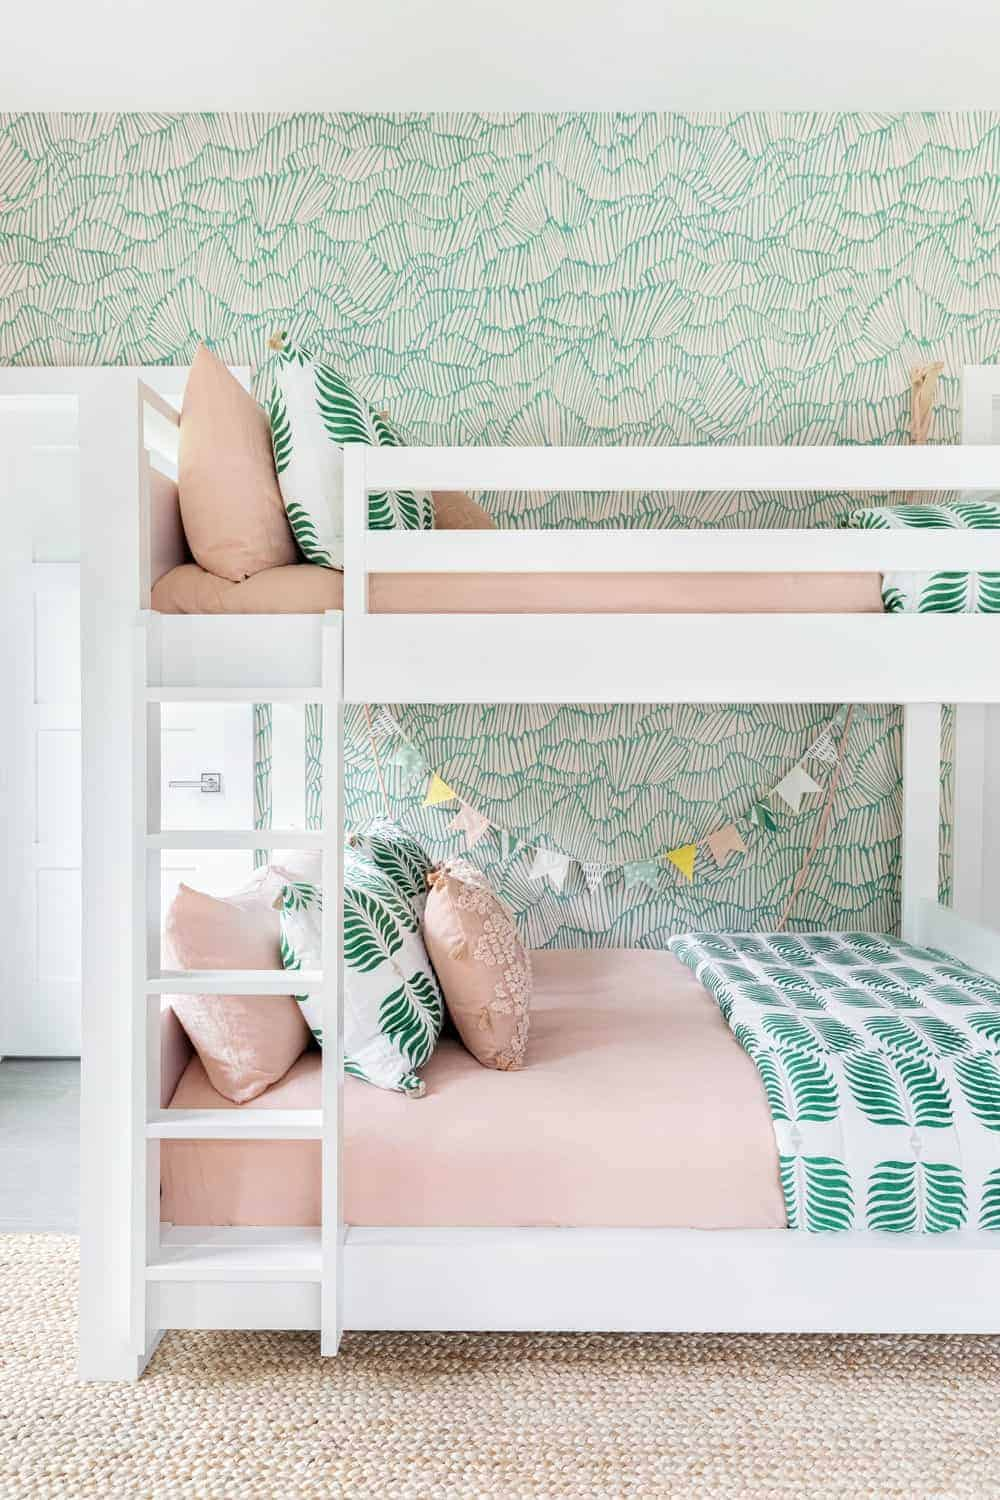 A close up look at the kids' bunk bed featuring a white, beige and green color scheme.